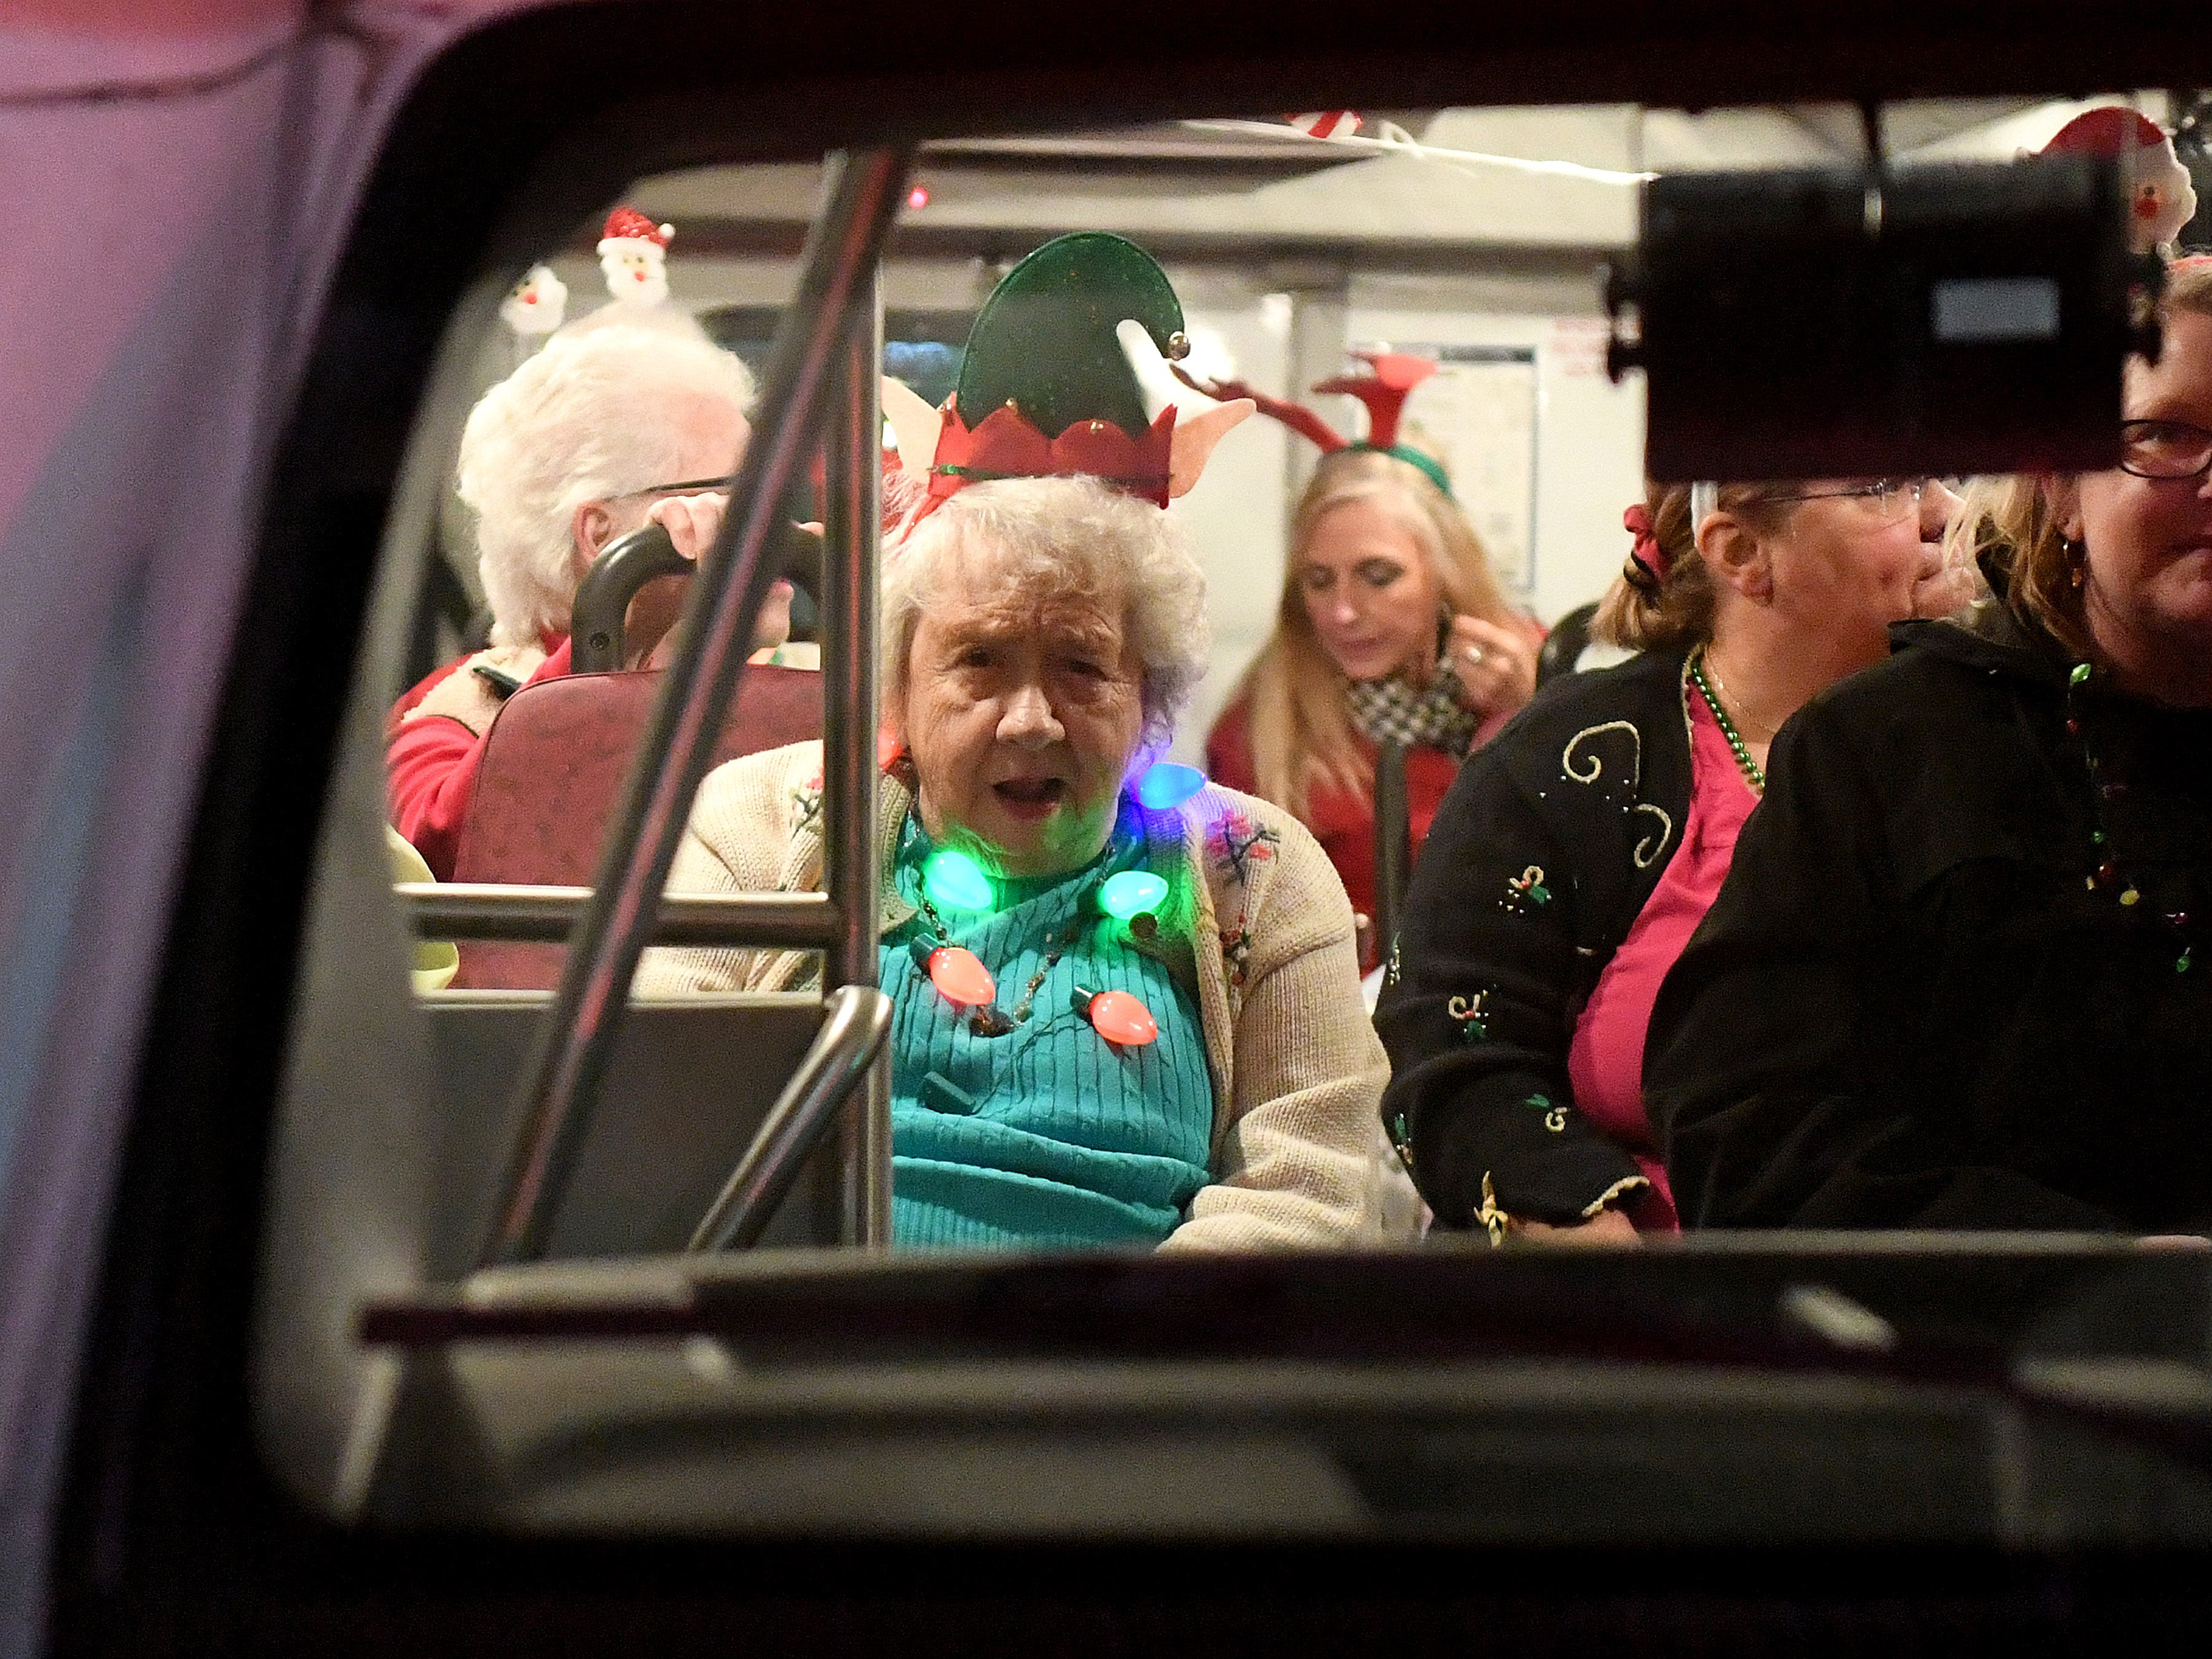 A lady rides in the parade inside a bus during the Staunton Christmas Parade on Monday, Nov. 26, 2018.